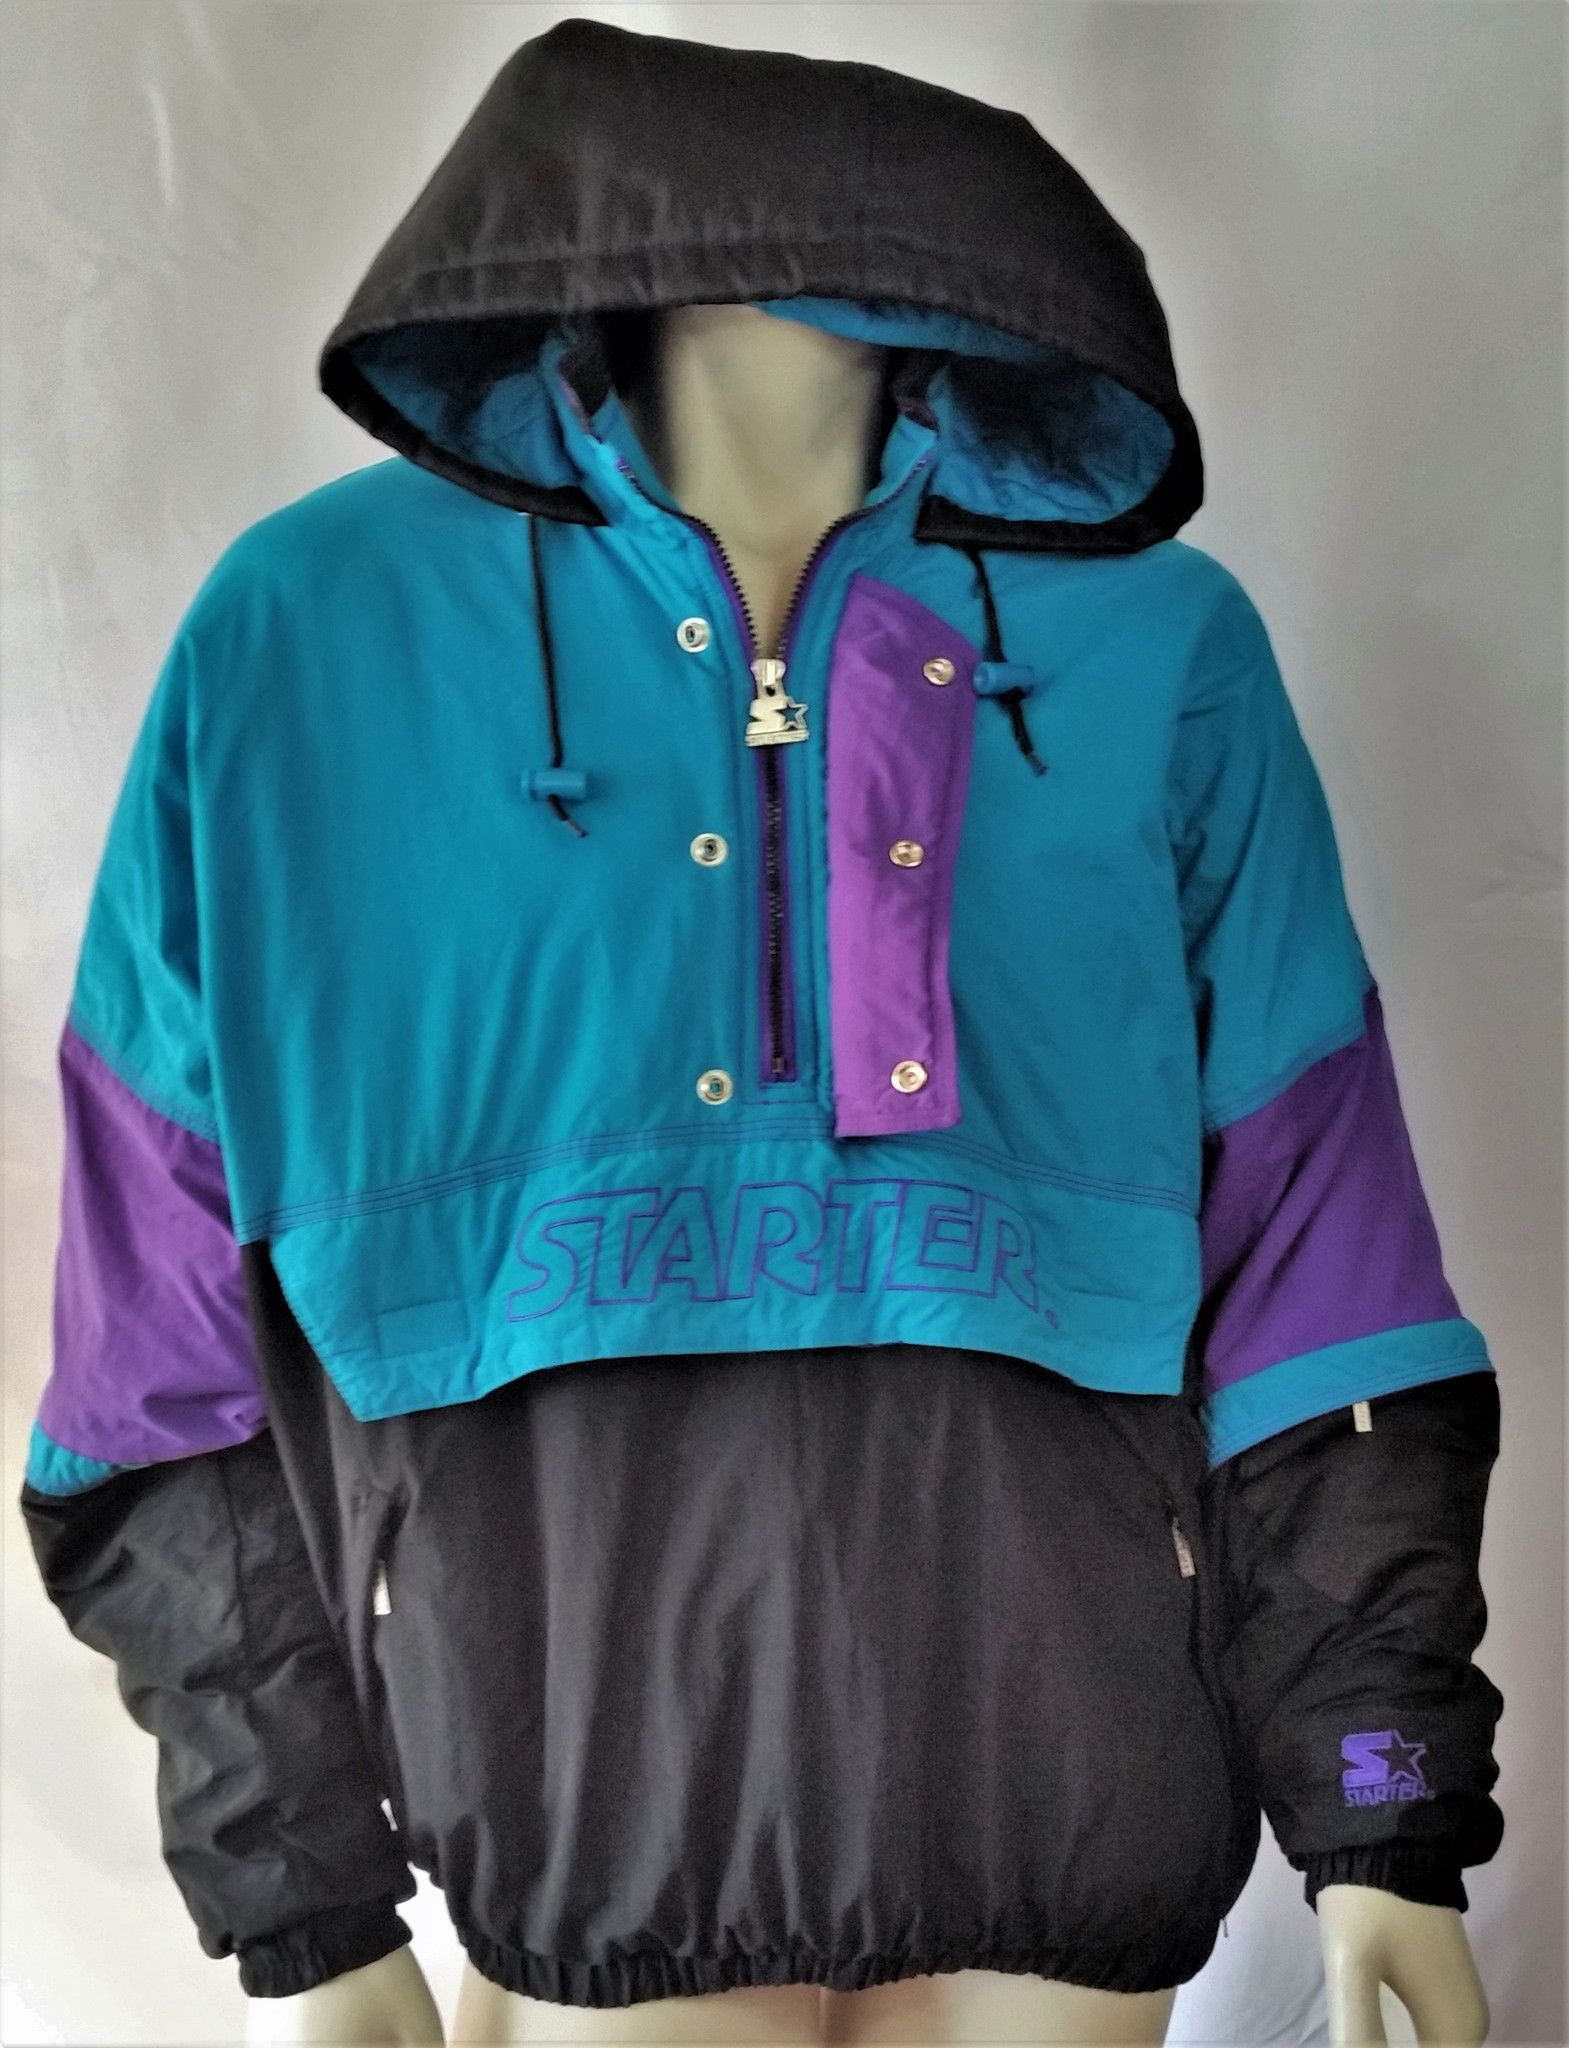 Gear For Sports vintage mens medium weather Retro jacket 90's hip hop style half zip pullover